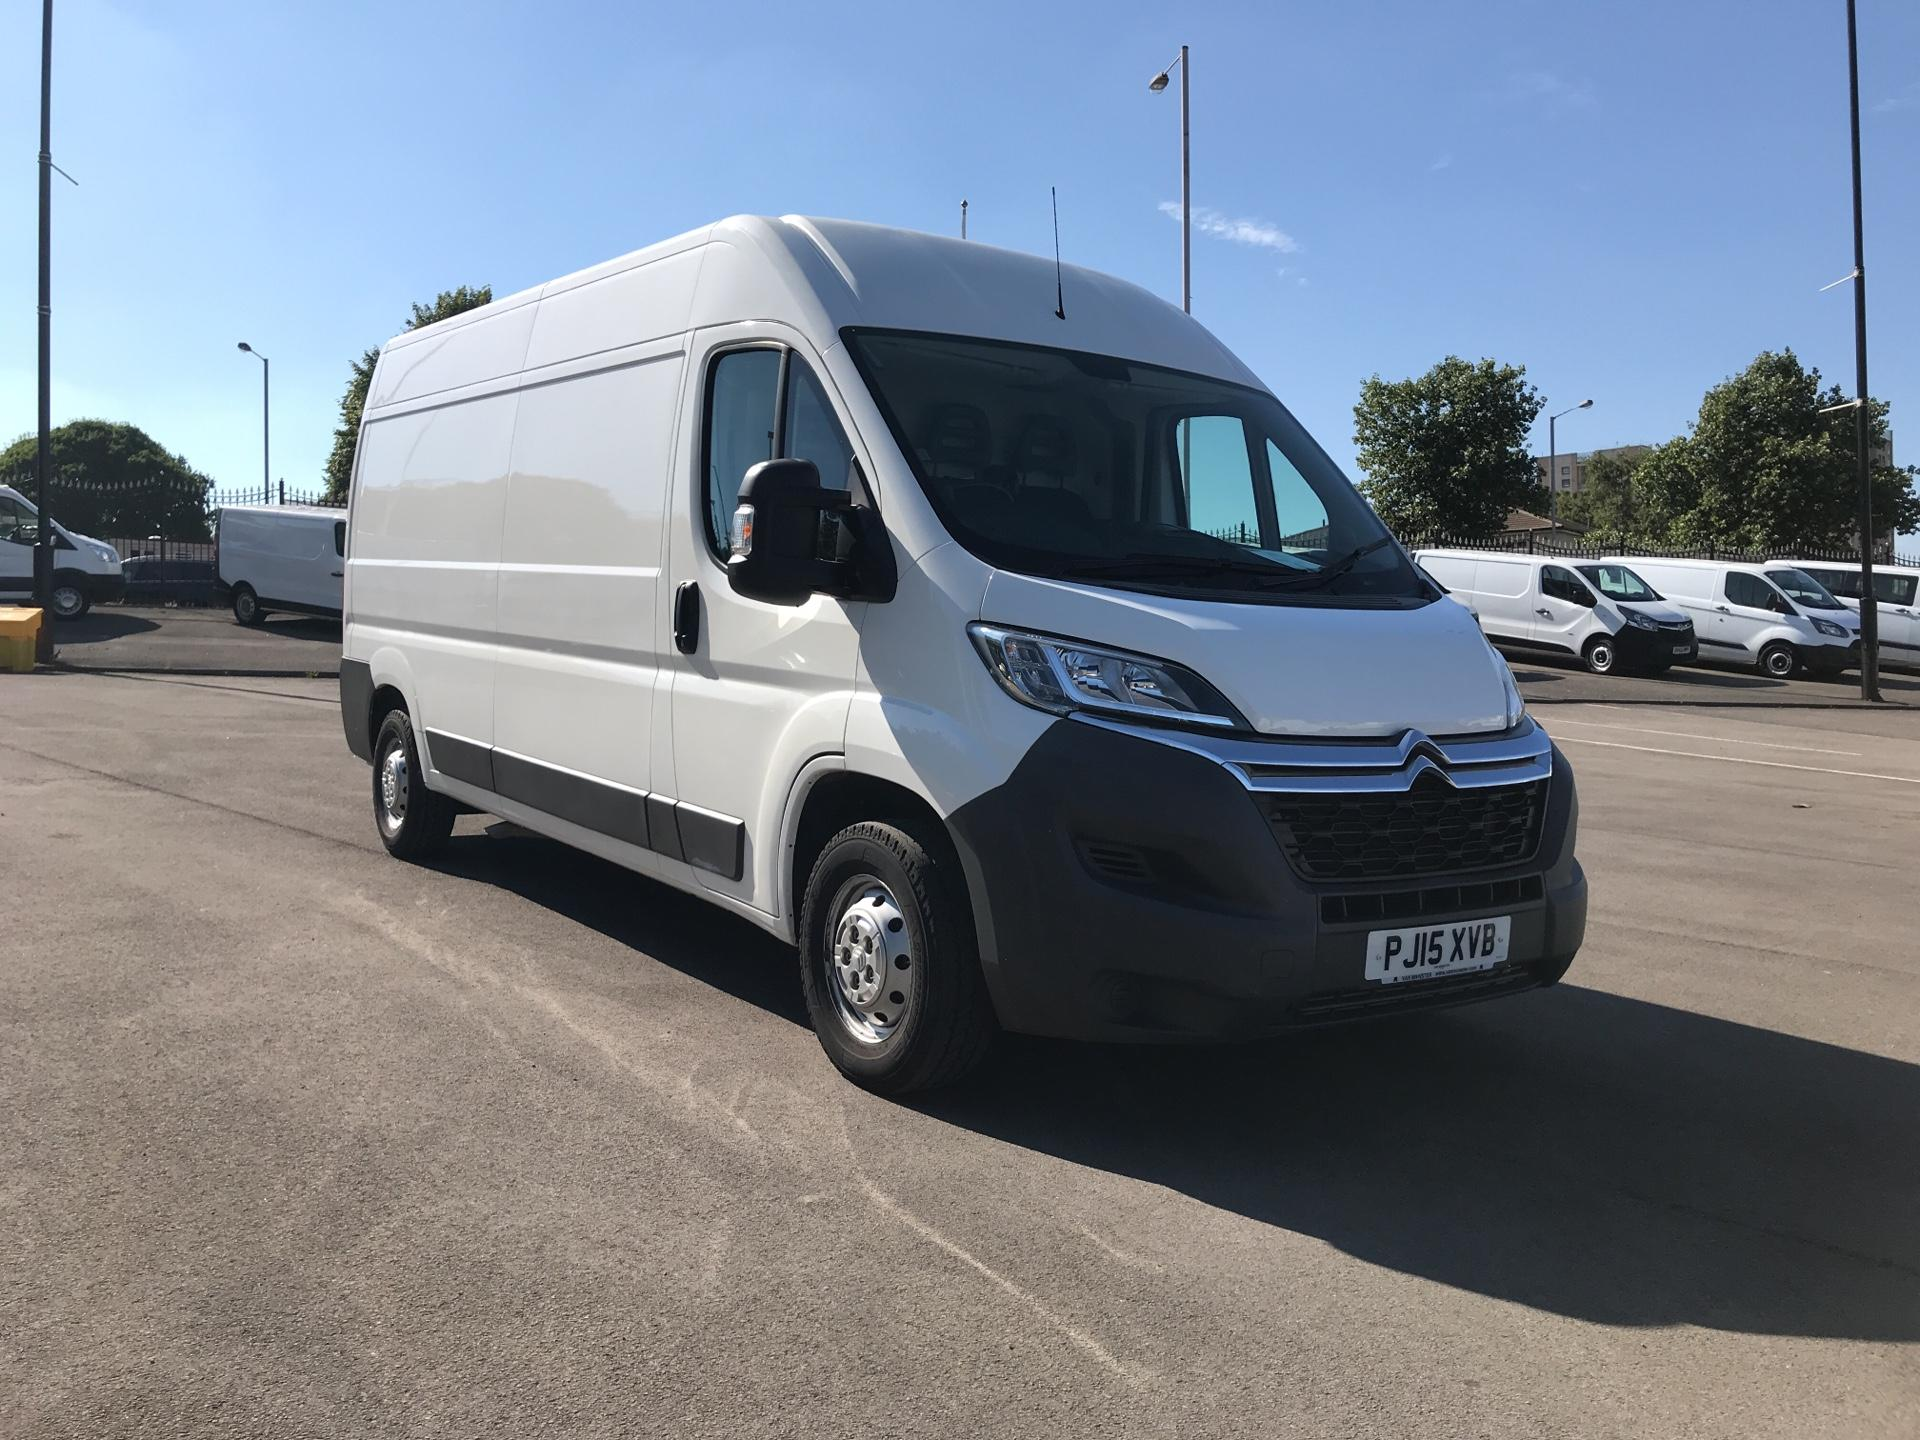 2015 Citroen Relay 2.2 Hdi H2 Van 130Ps Enterprise (PJ15XVB)